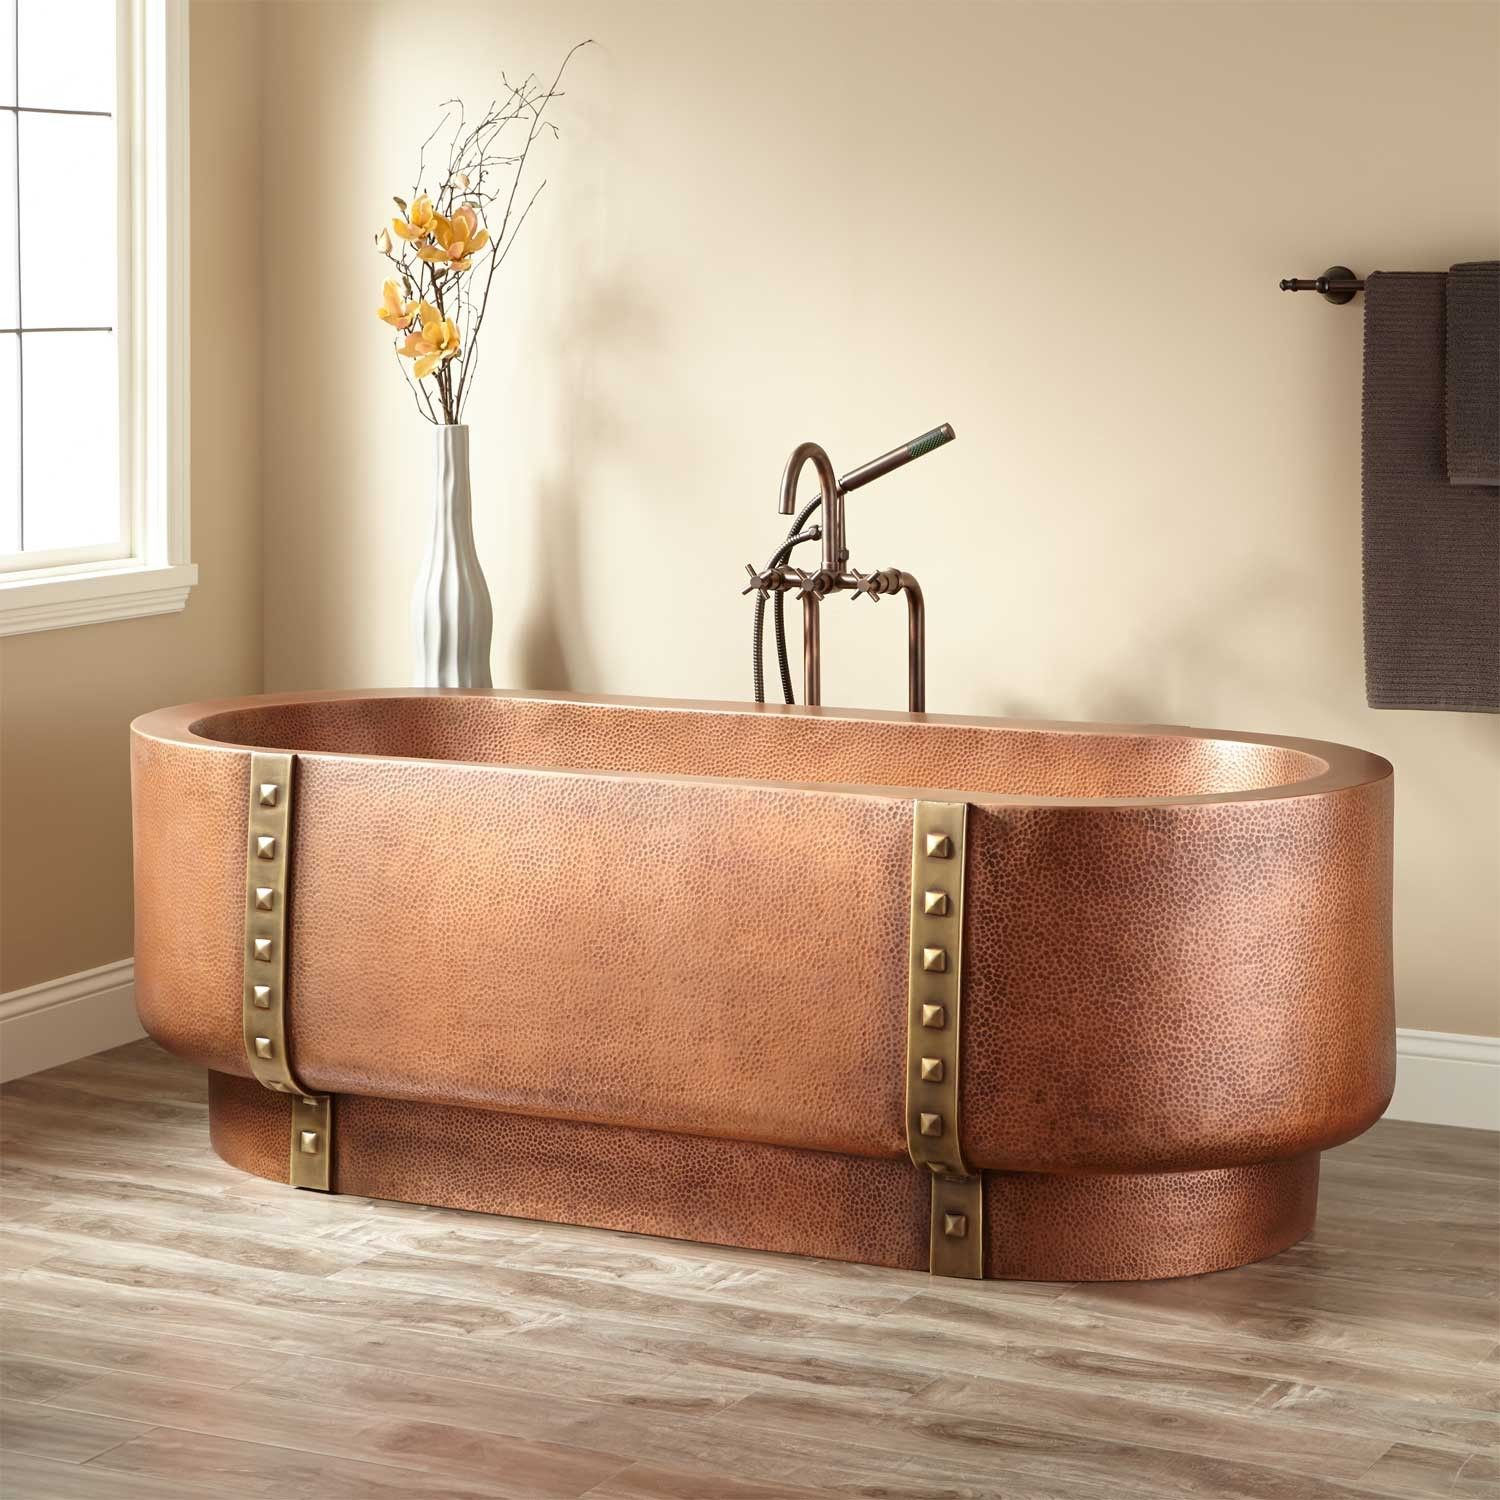 Tokoro Double Wall Copper Freestanding